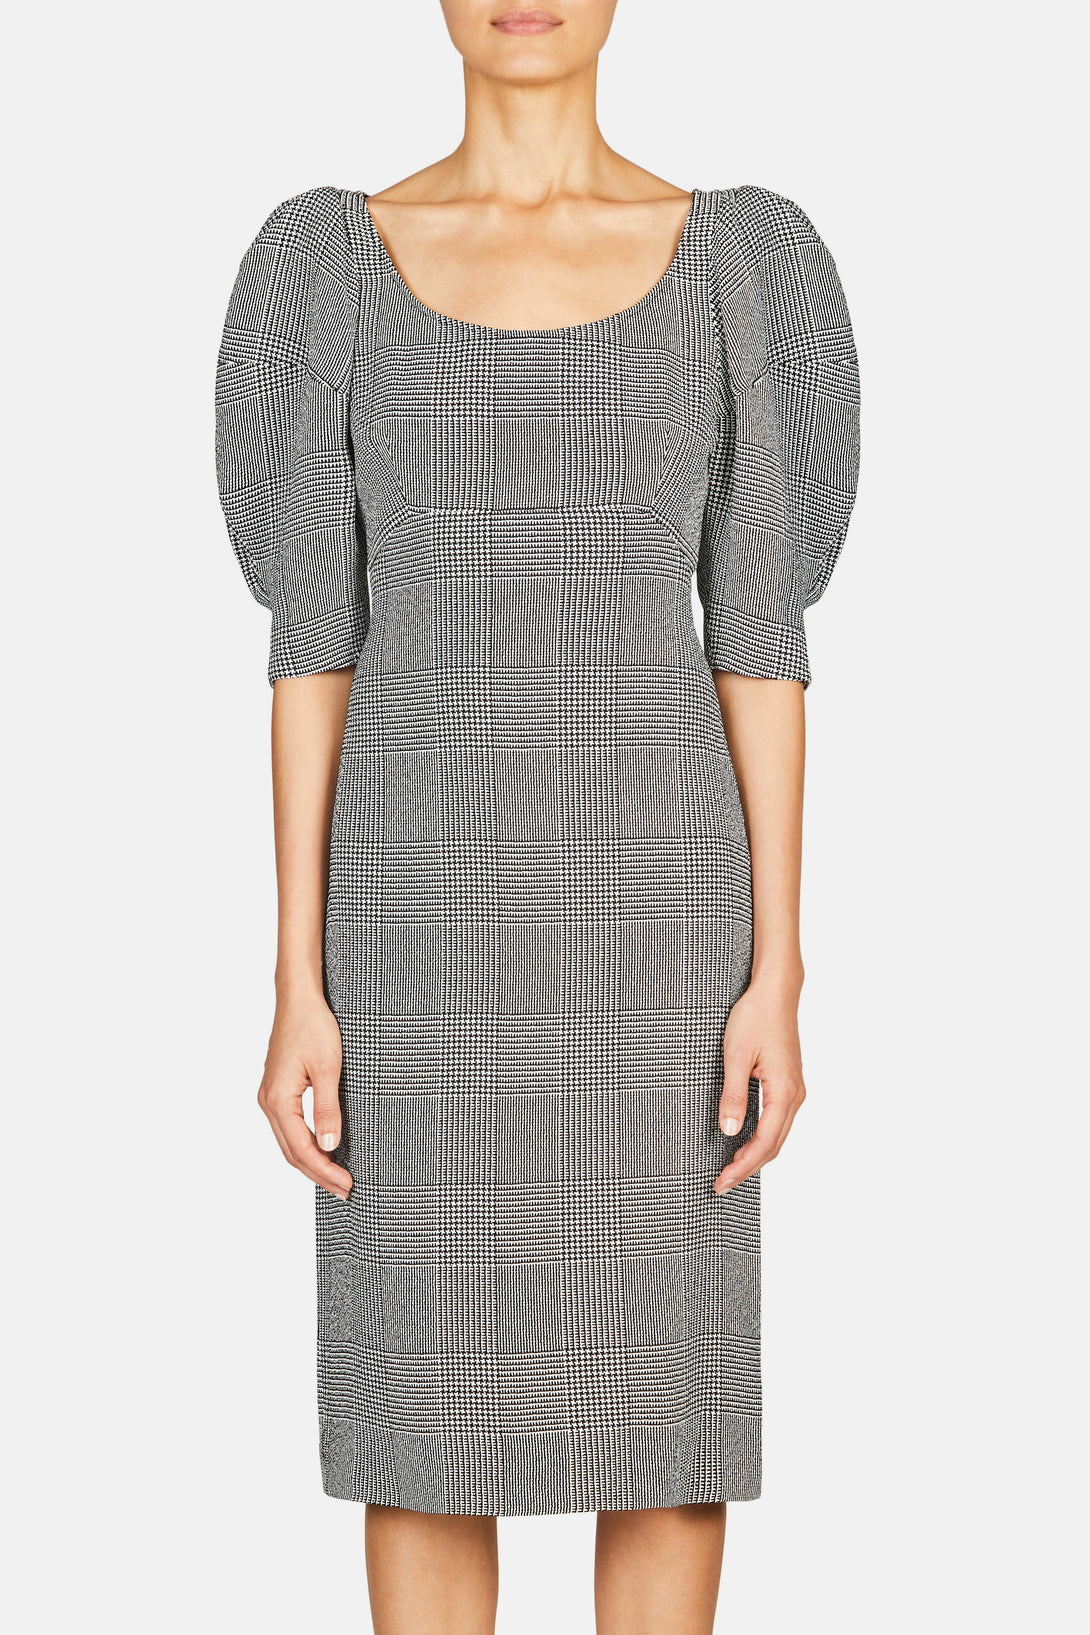 Beatrice Round Sleeve Dress - Black/White Check